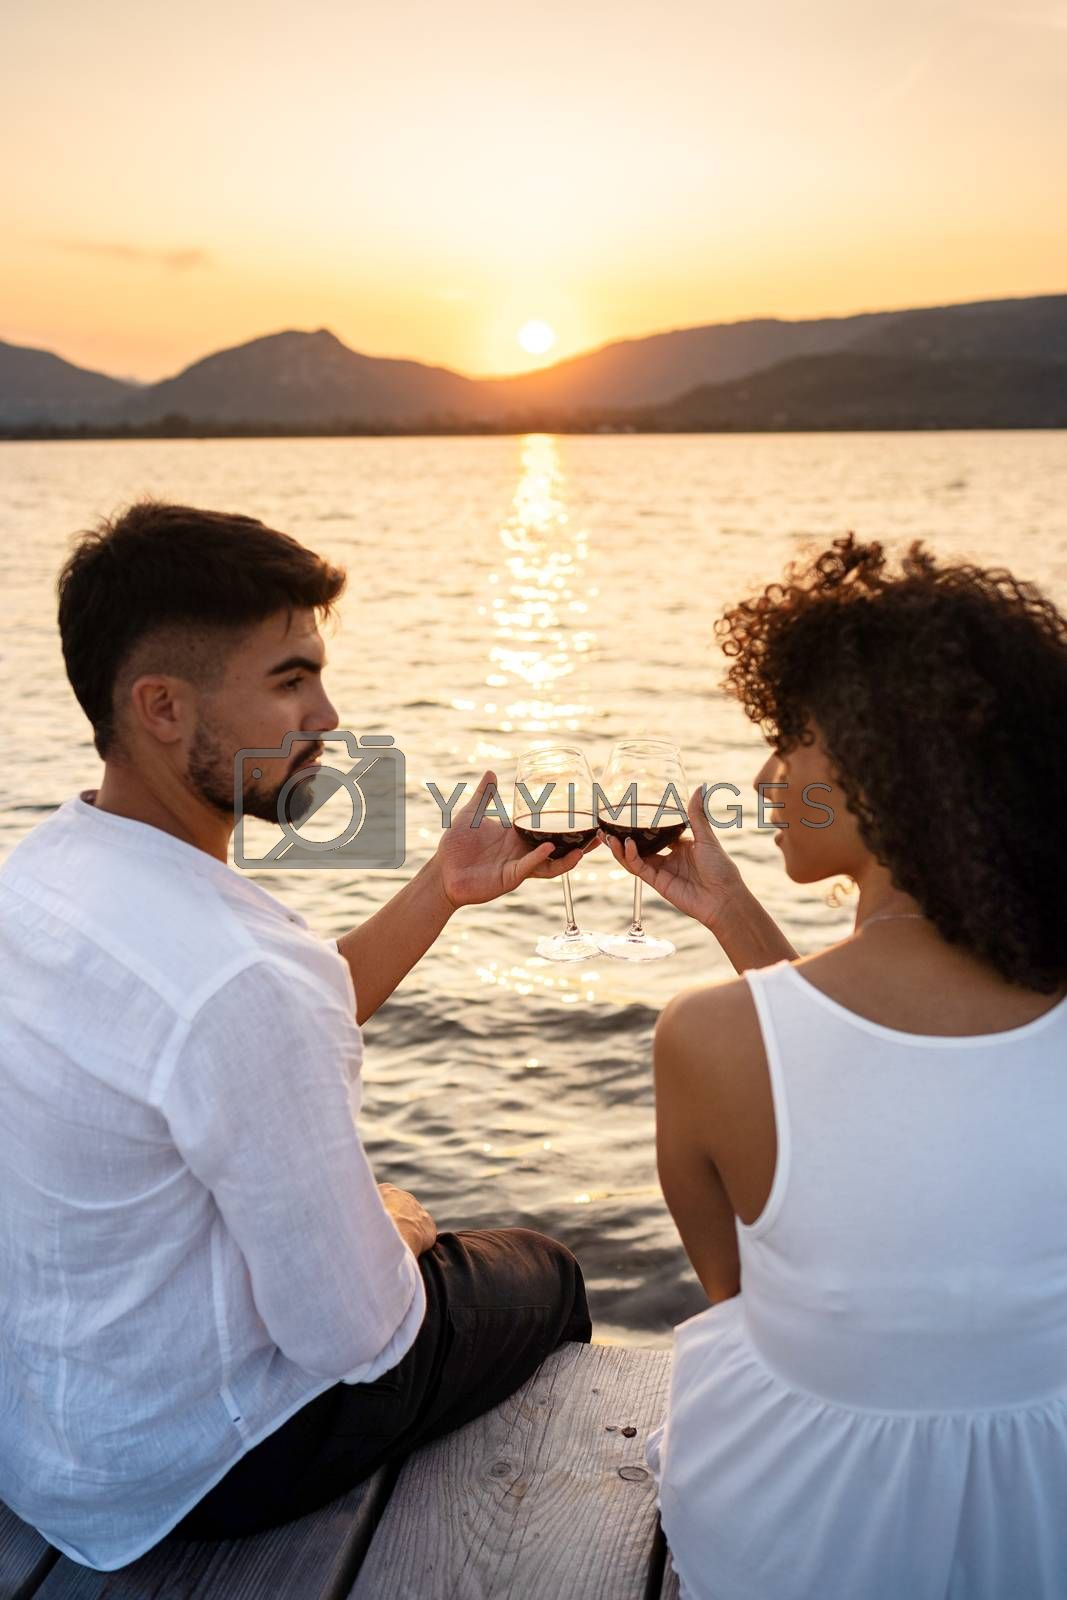 Royalty free image of Romance scene of multiracial couple sitting on a pier at sunset or dawn toasting with red wine looking each other in the eyes - Attractive man bonding with her Hispanic girlfriend - Focus on glasses by robbyfontanesi